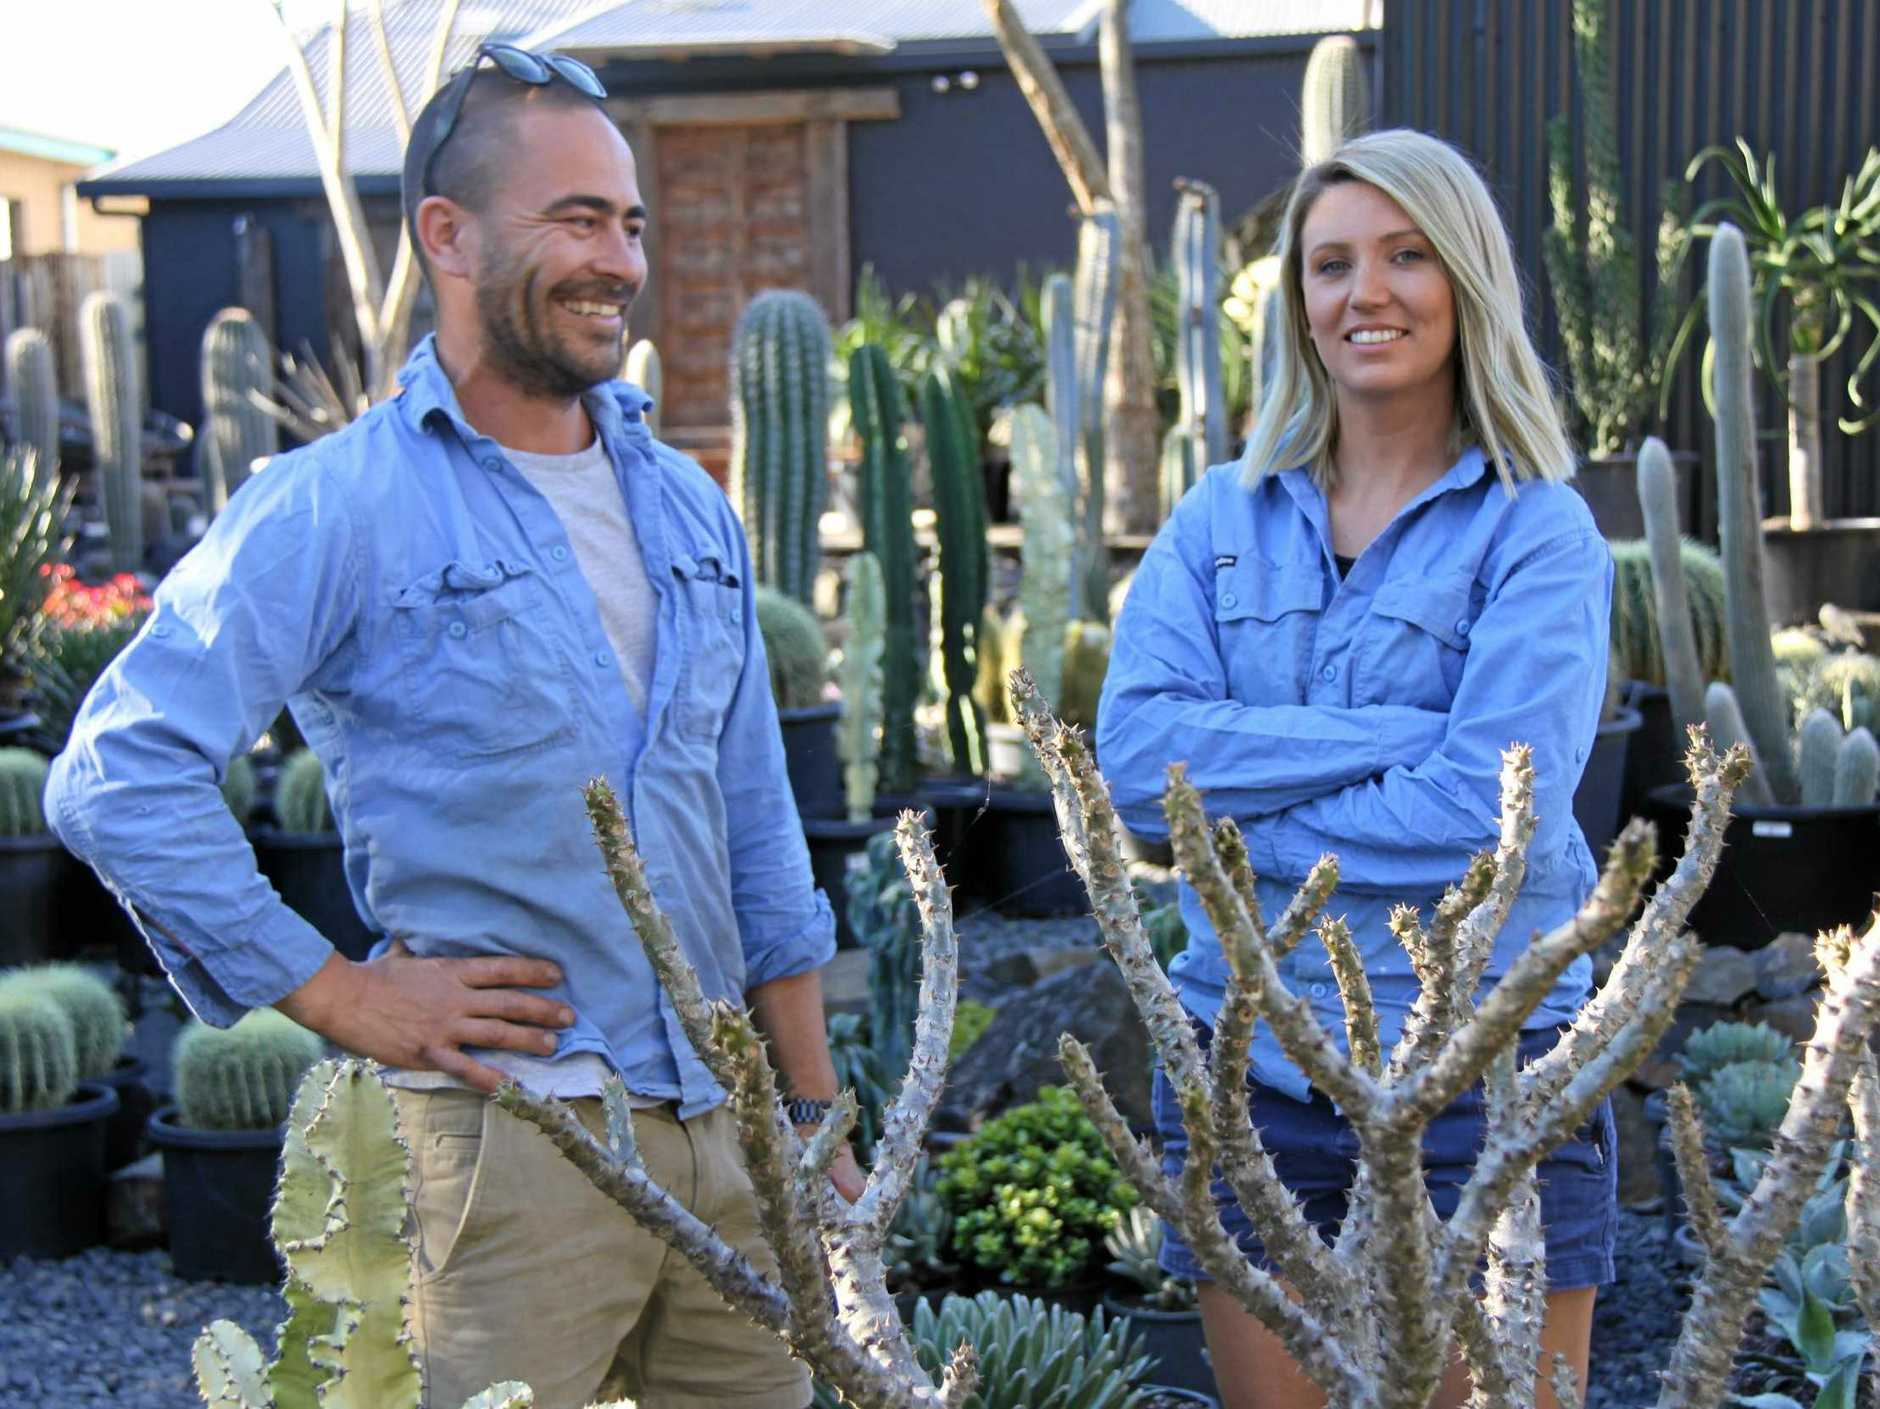 SOPHISTICATED APPROACH: Jesse and Cass Adams moved to the Northern Rivers to establish their landscaping and garden design consultancy, Beautiful Gardens Exotic Nursery, which features sophisticated and textural succulents and cacti plants.